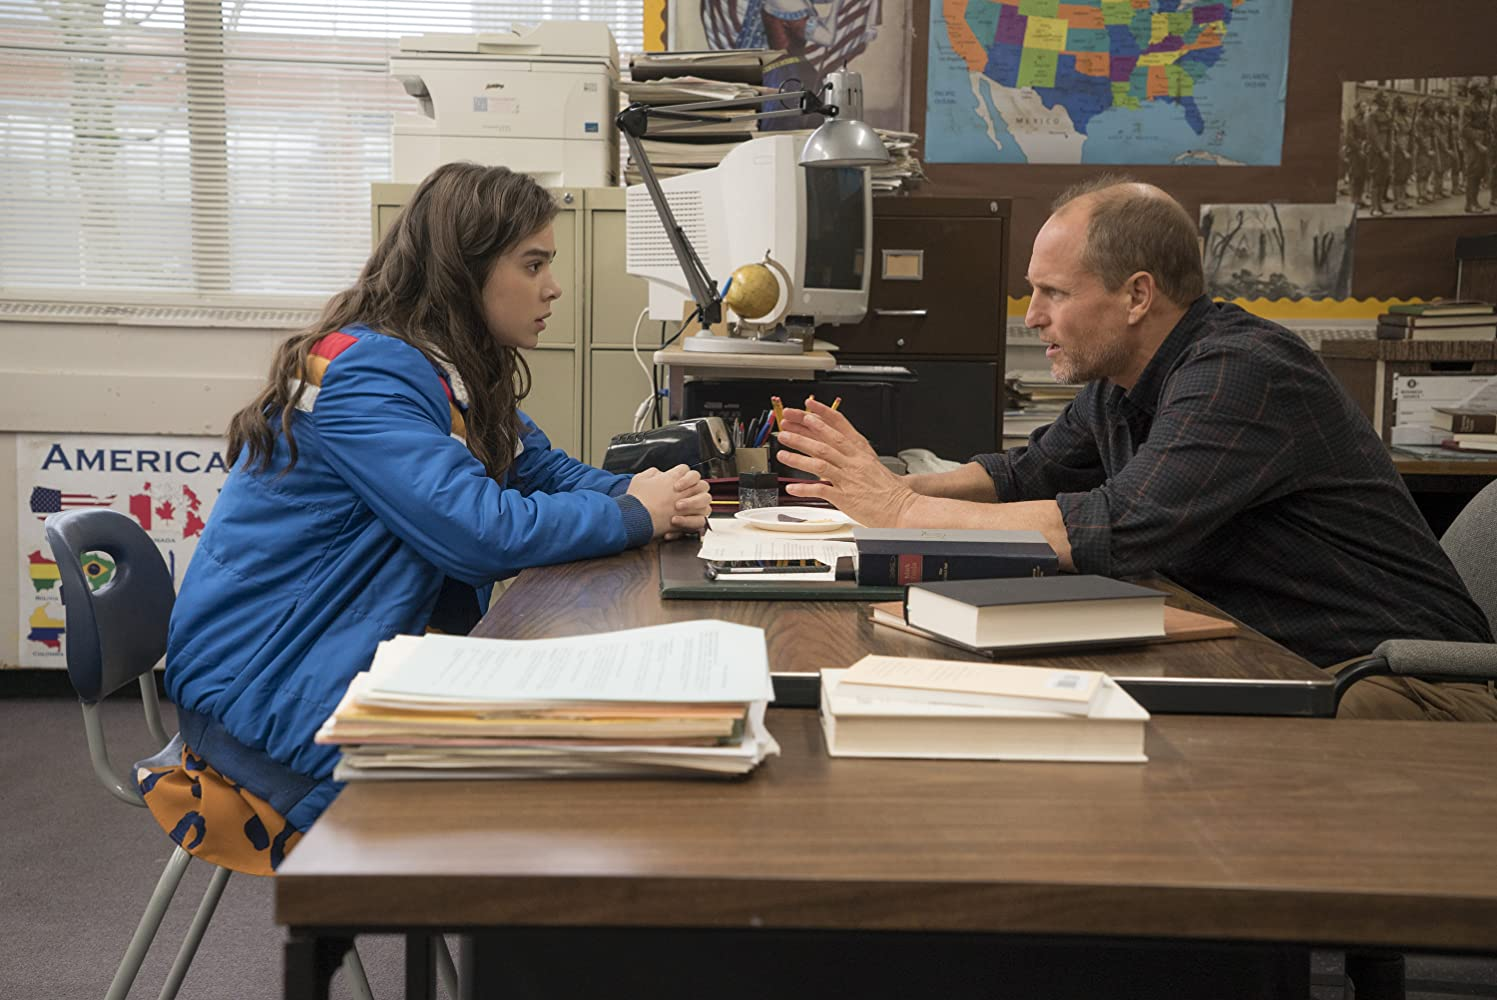 Woody Harrelson and Hailee Steinfeld in The Edge of Seventeen (2016)